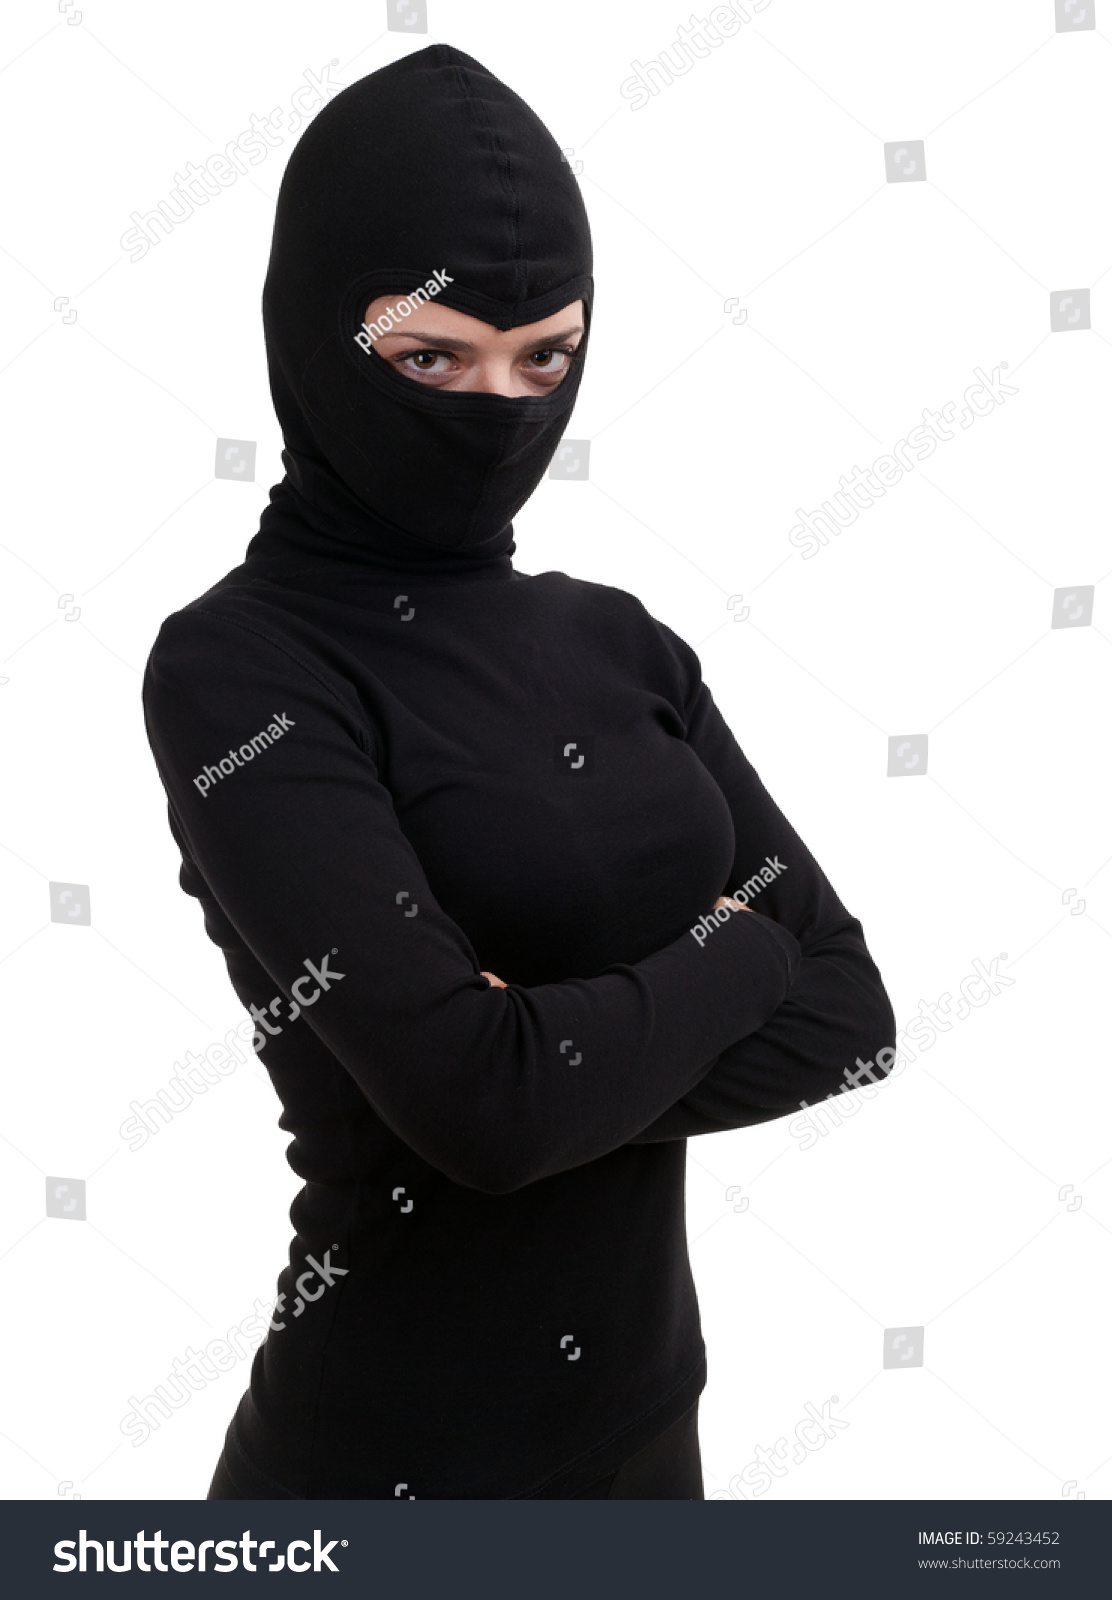 female thief in black clothes and balaclava stock photo 59243452   shutterstock